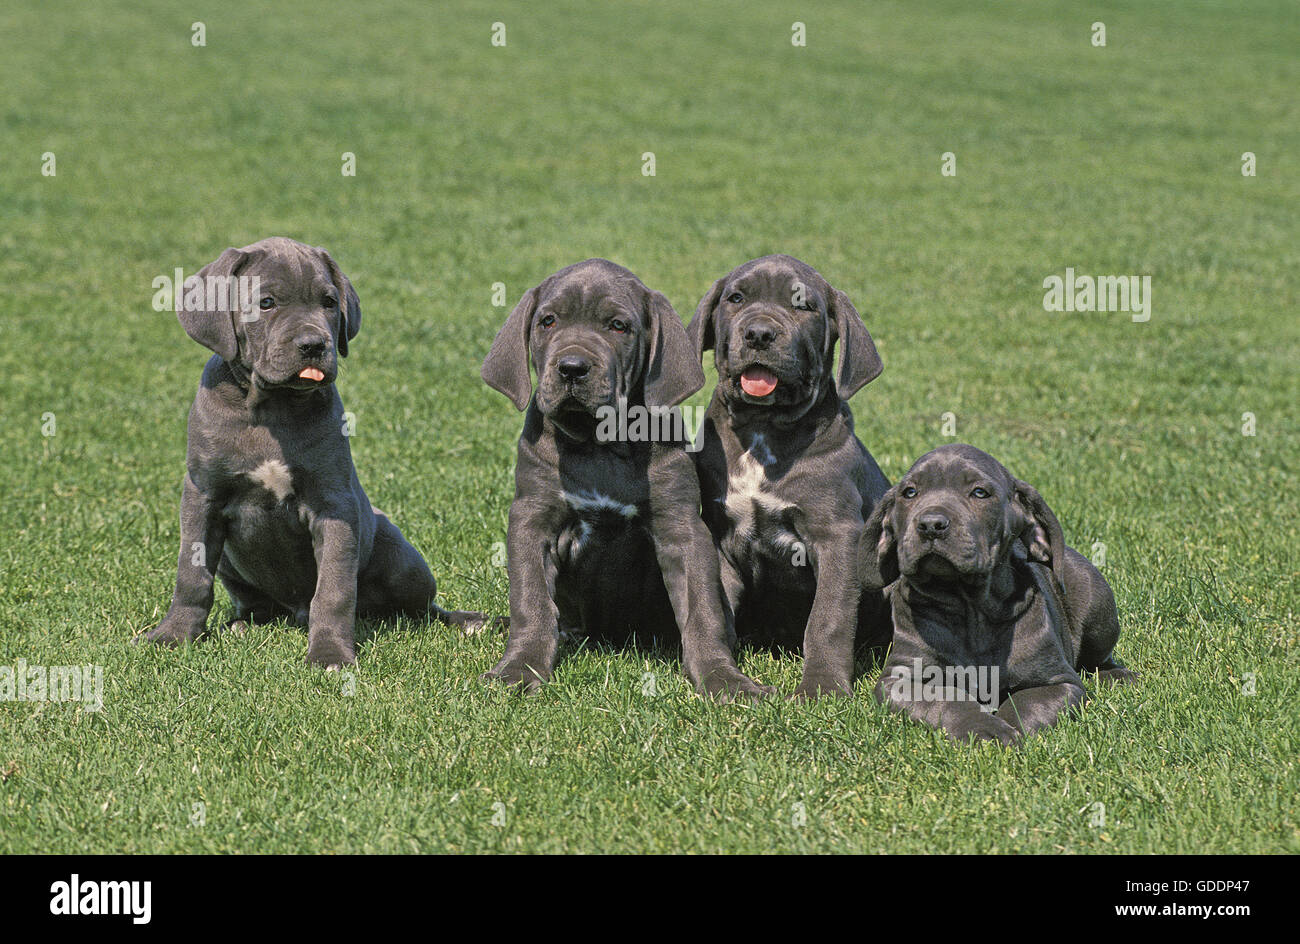 mastino napoletano hund welpe auf rasen stockfoto bild 111555479 alamy. Black Bedroom Furniture Sets. Home Design Ideas